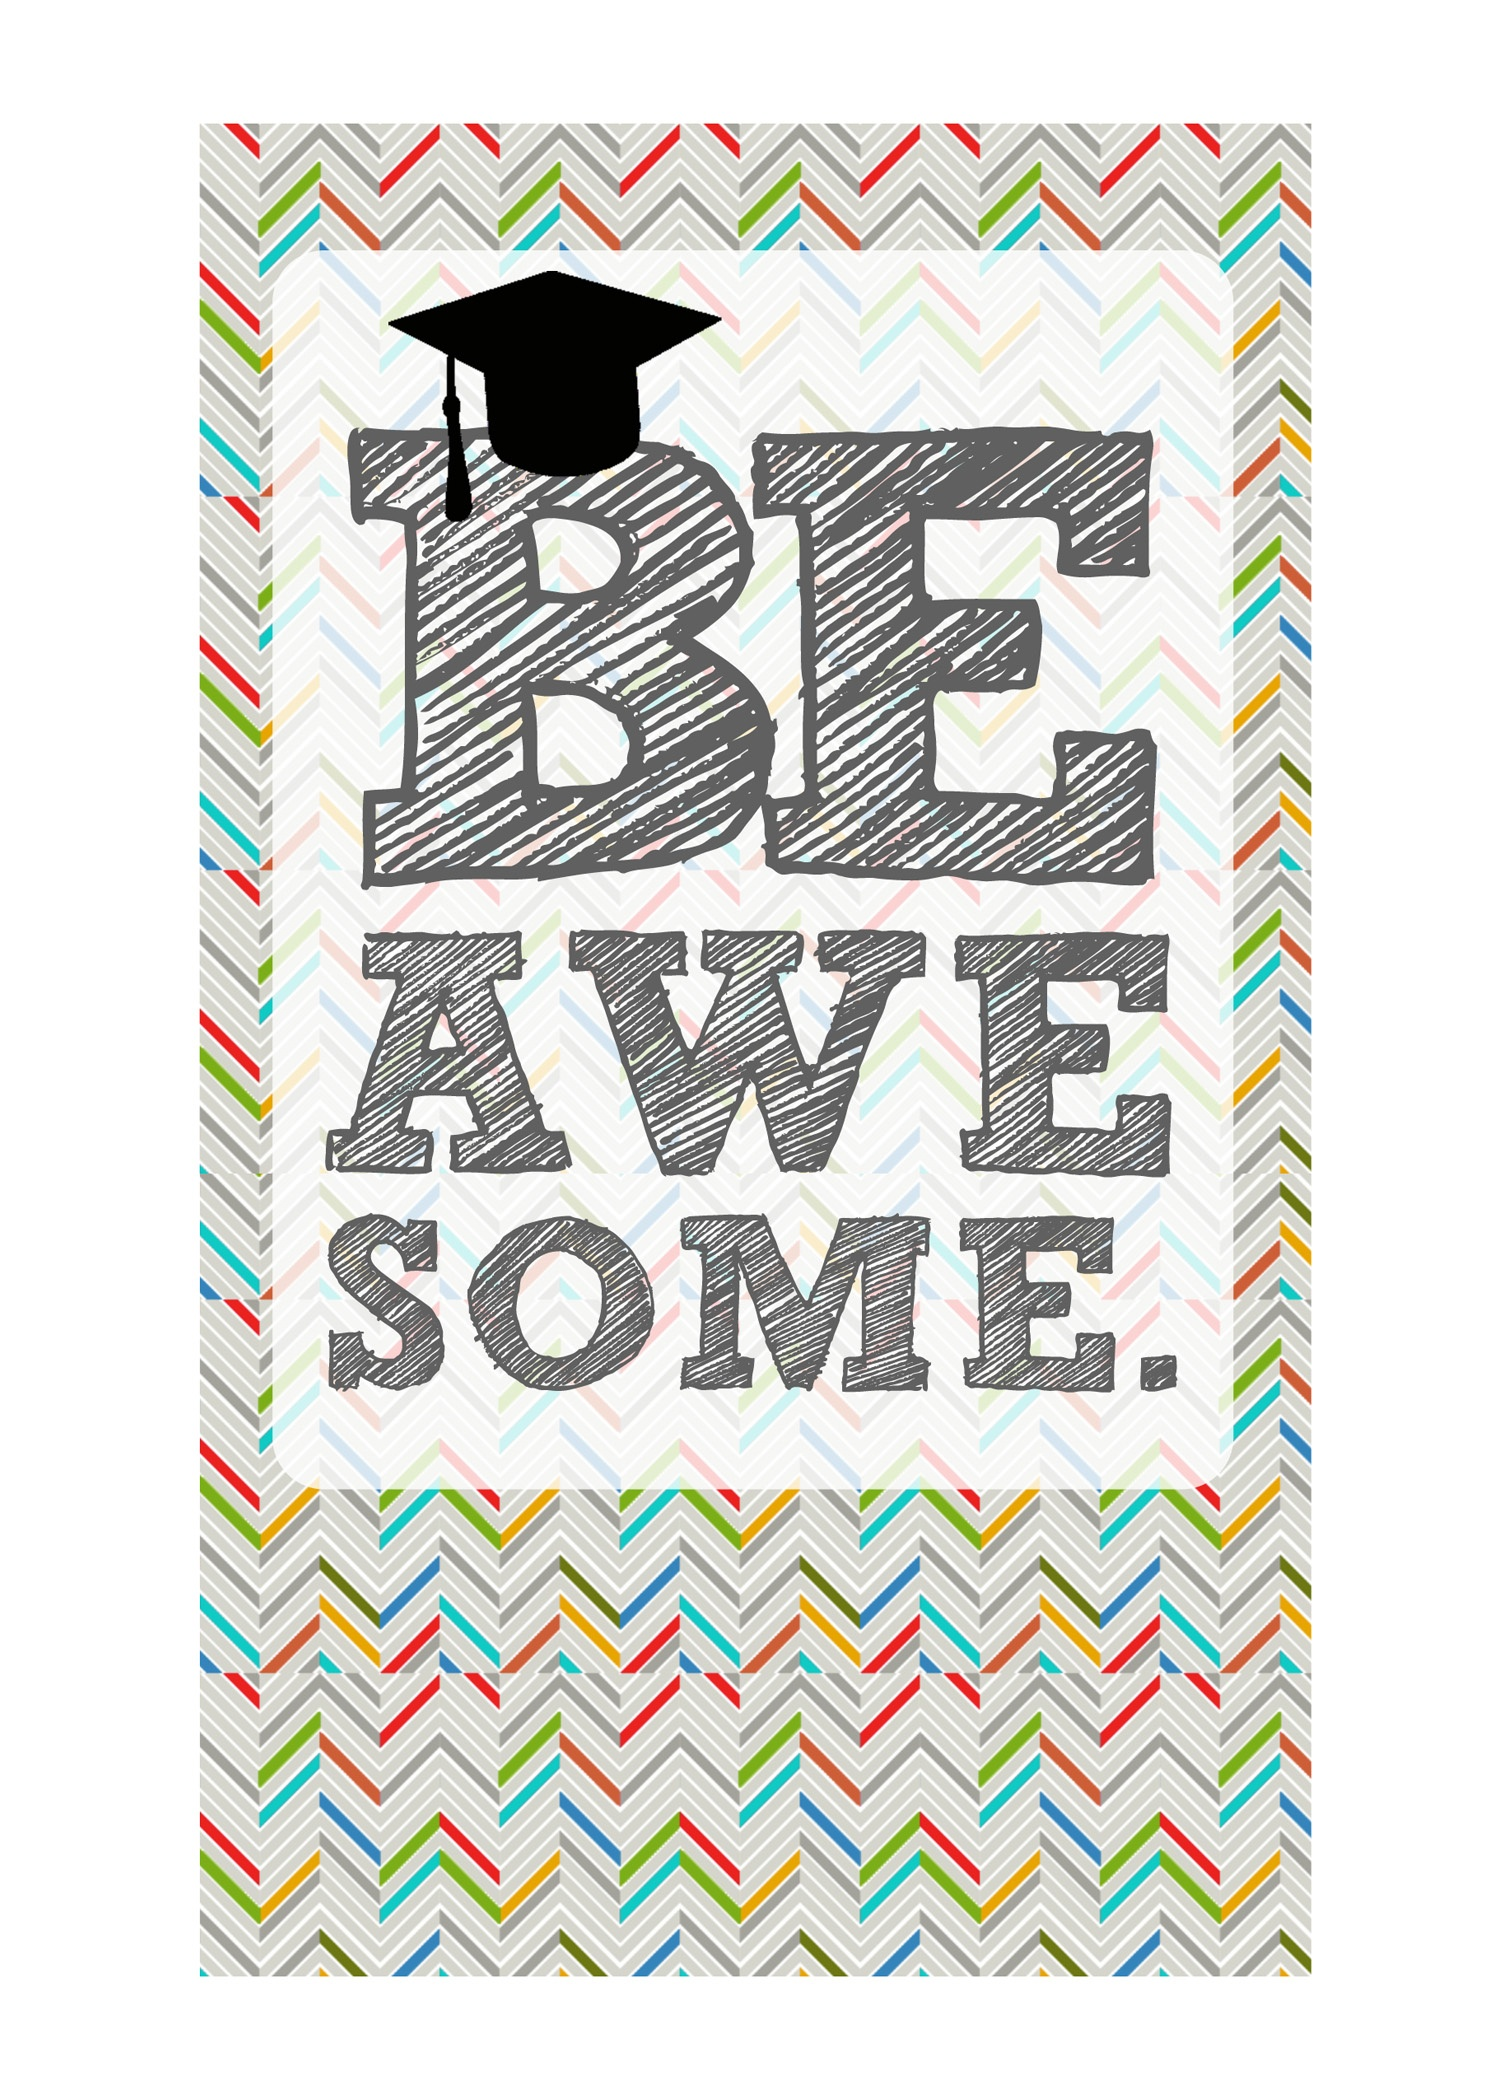 Diy Printable Graduation Cards–'omg' & 'be Awesome' - Graduation Cards Free Printable Funny